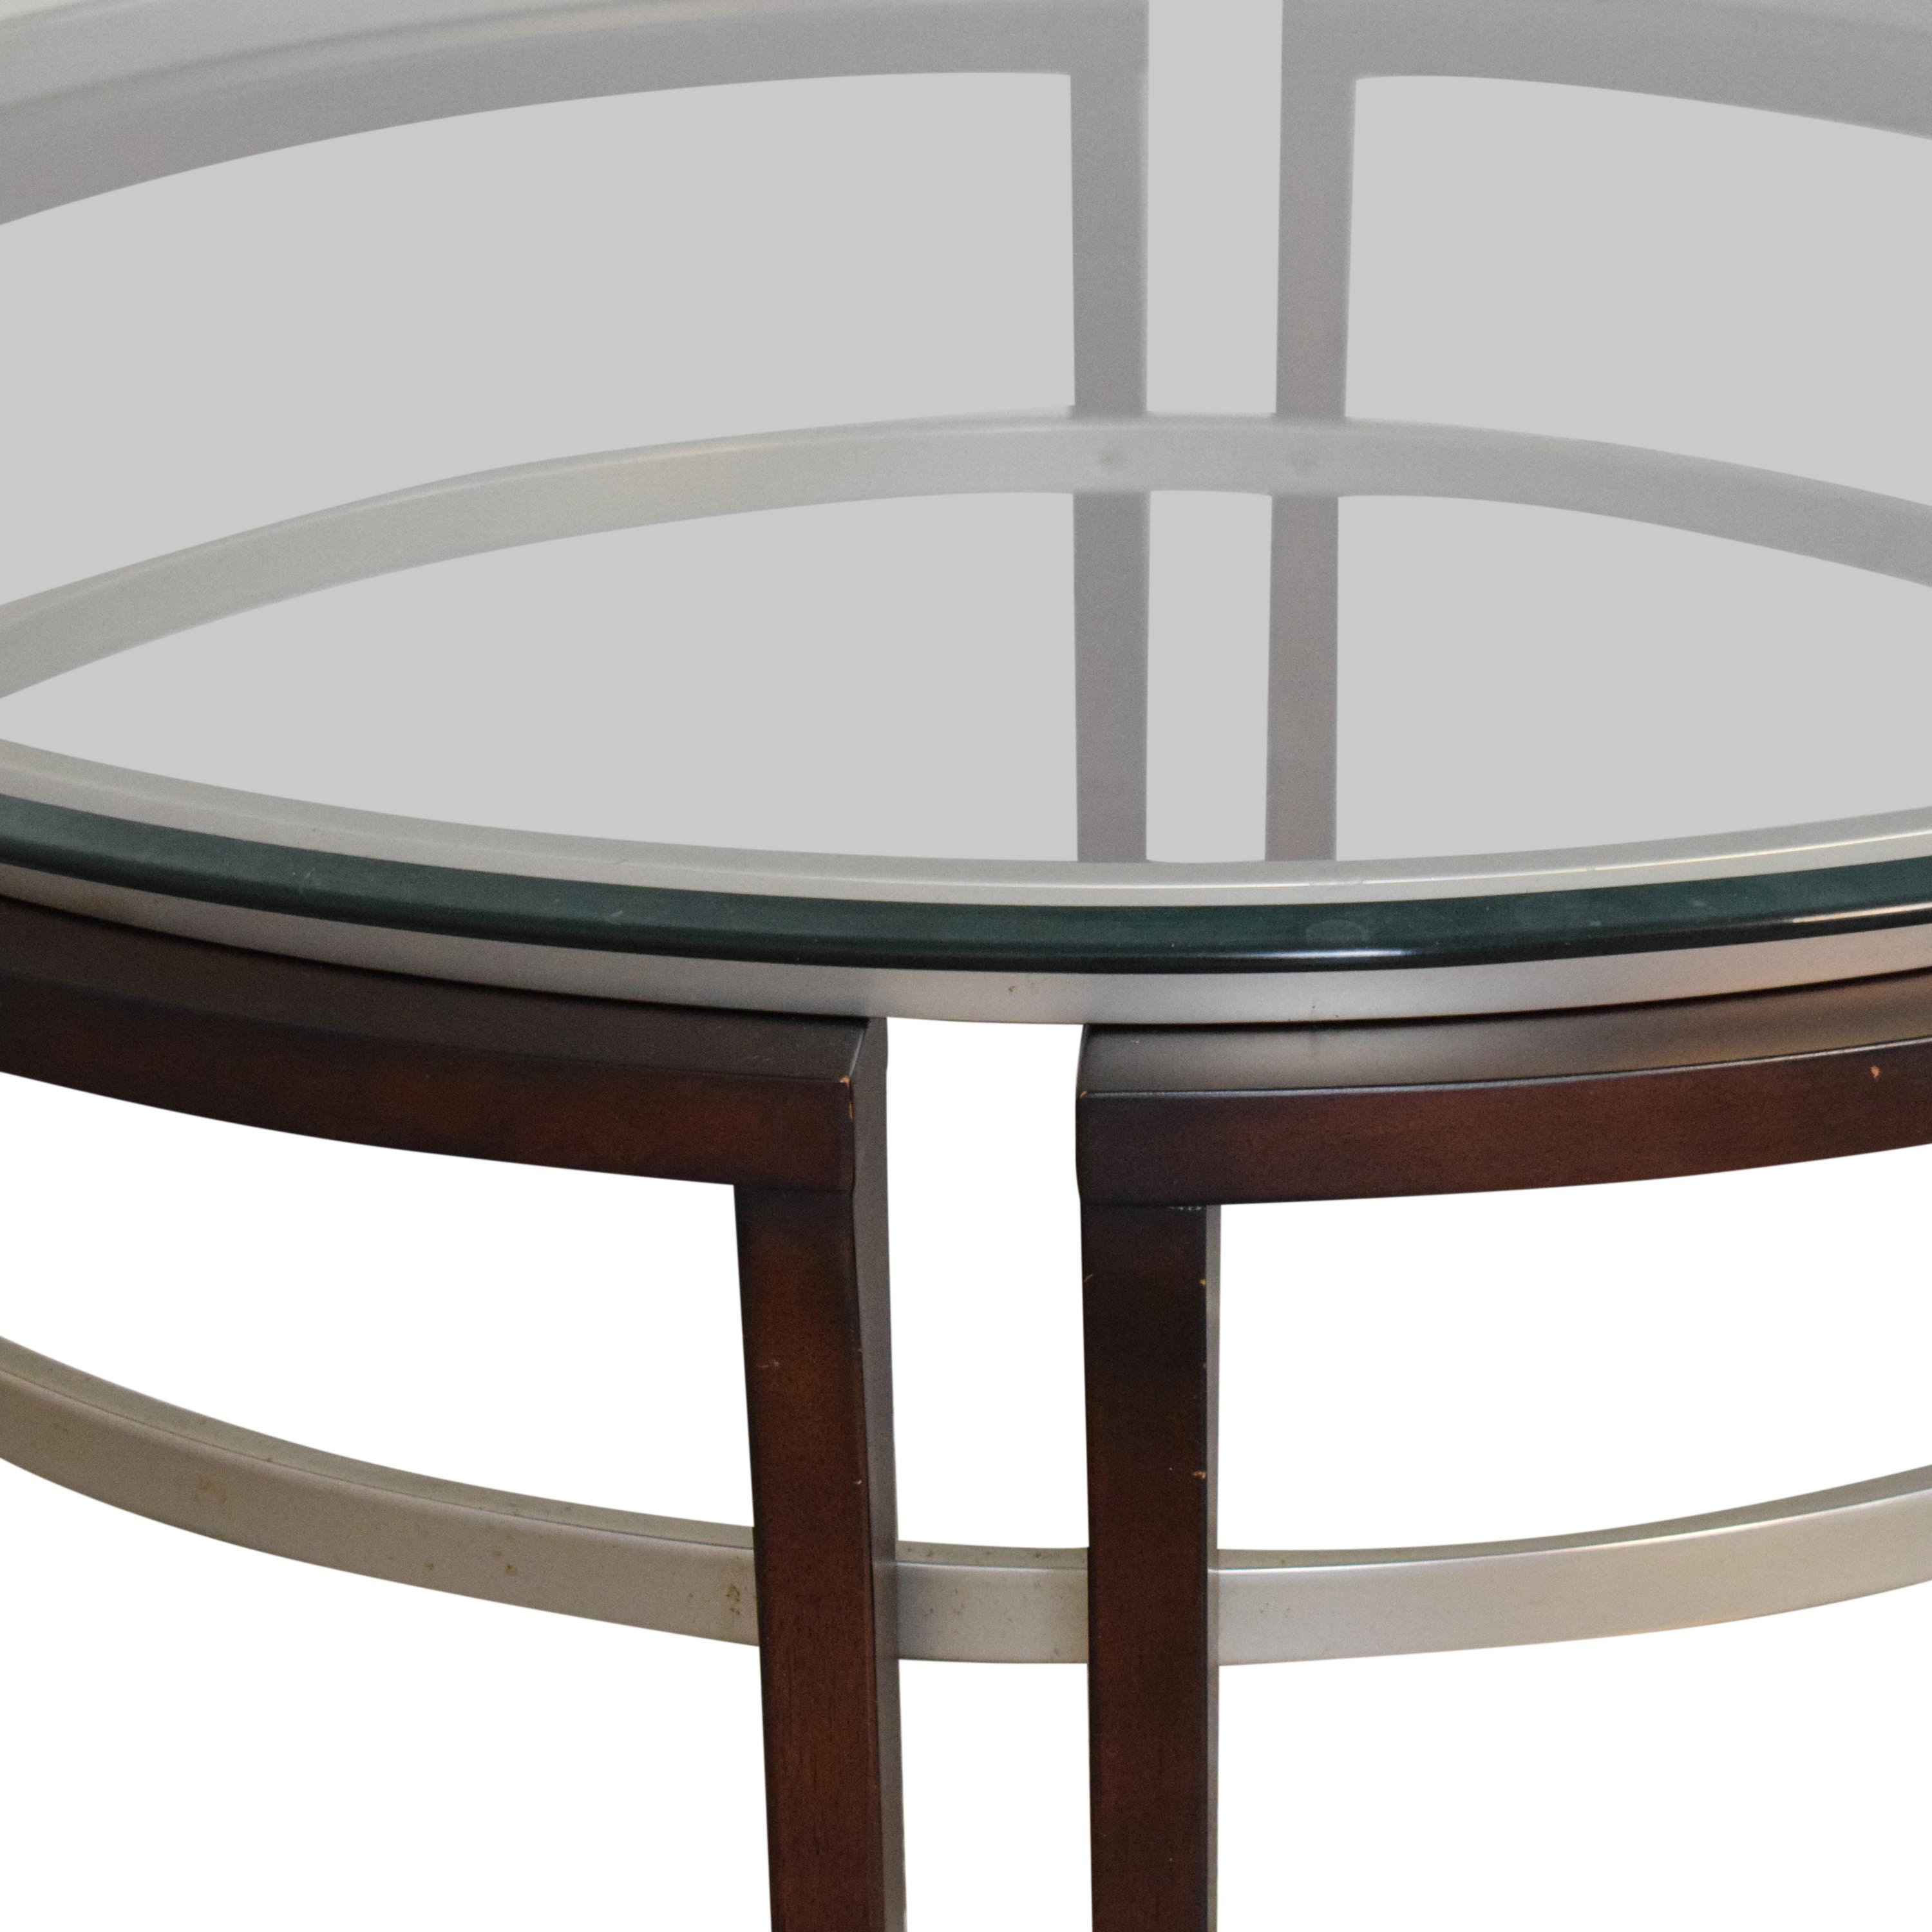 Macy's Fusion Round Coffee Table / Tables